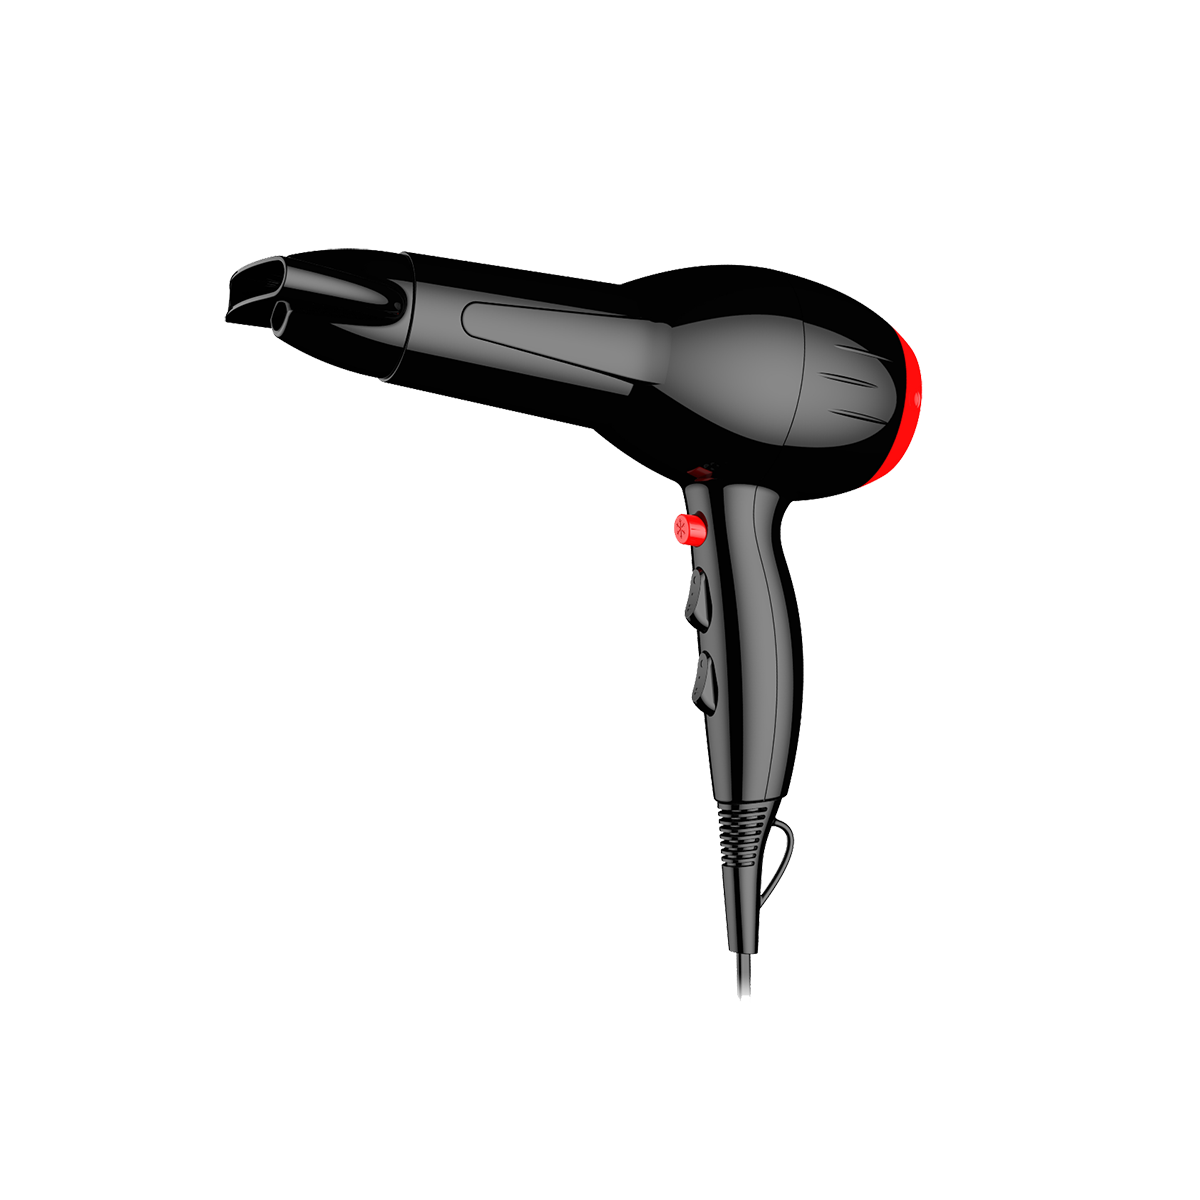 WizHaus PROFESSIONAL HAIR DRYER RK512 2000W WITH AC MOTOR INSIDE BRAND HORAY MOTOR